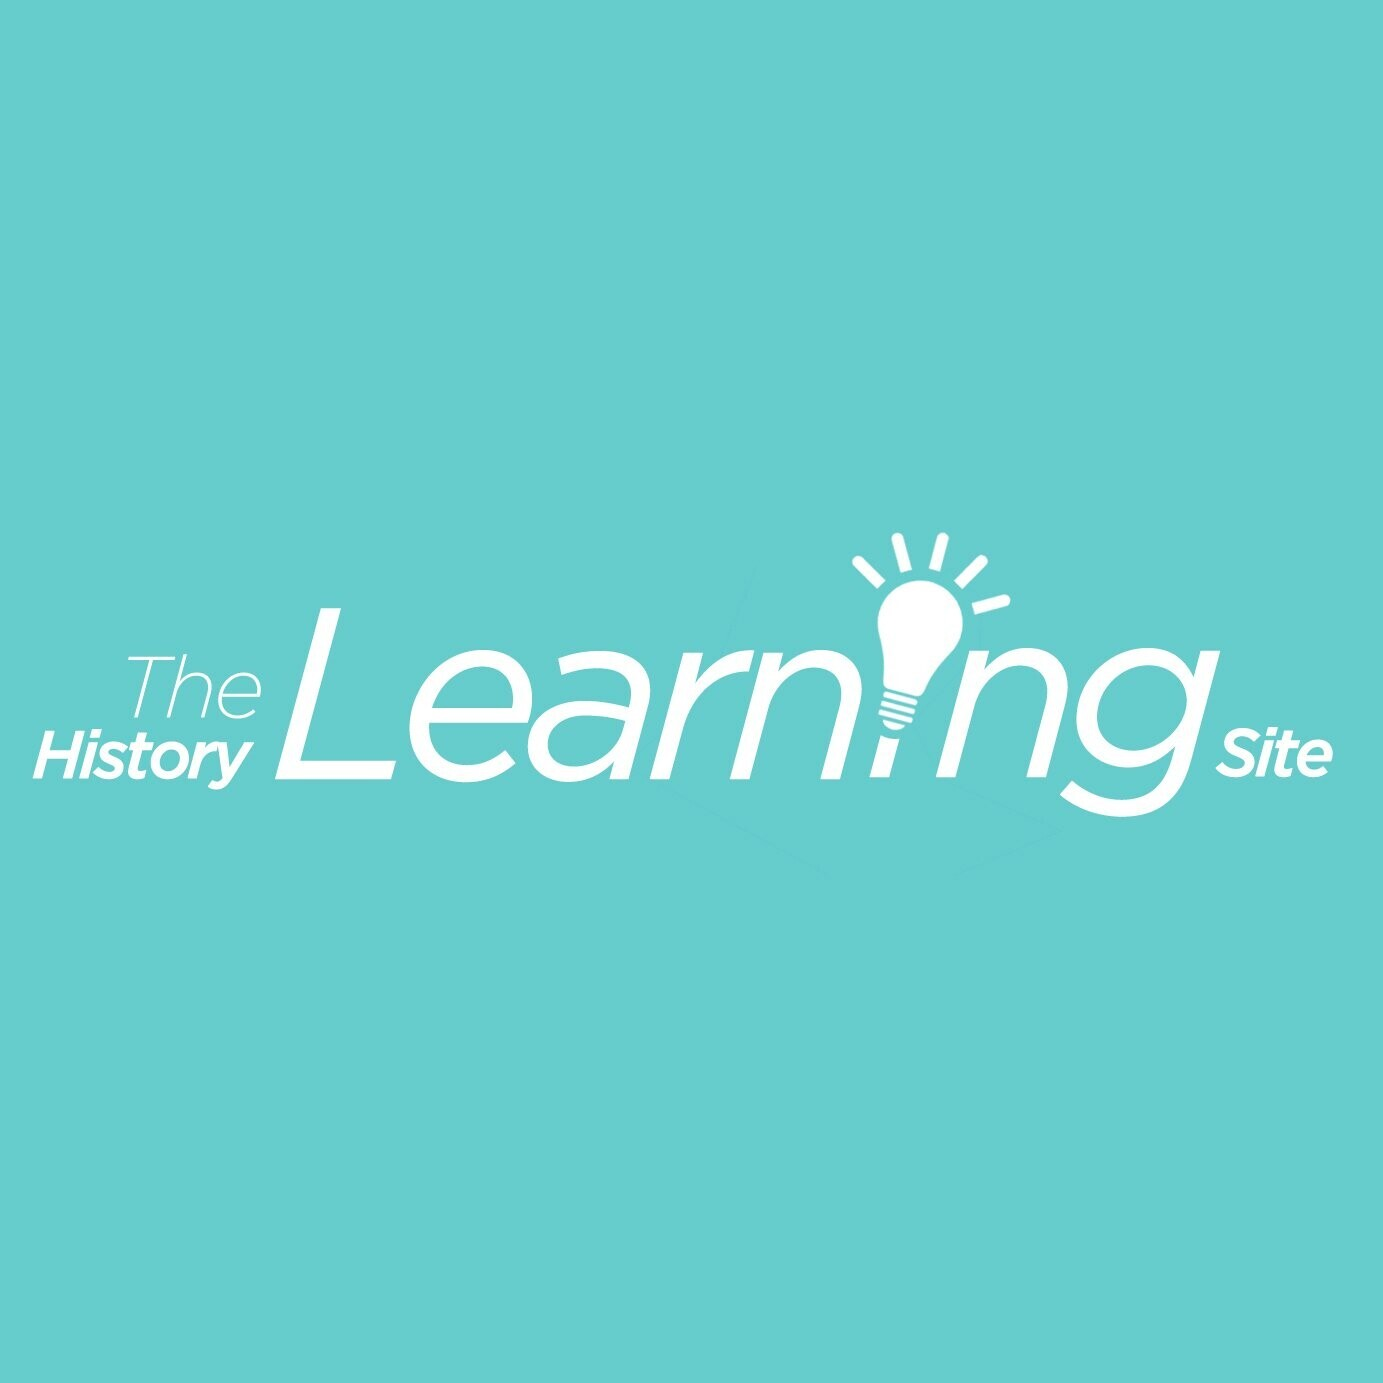 History Learning Site